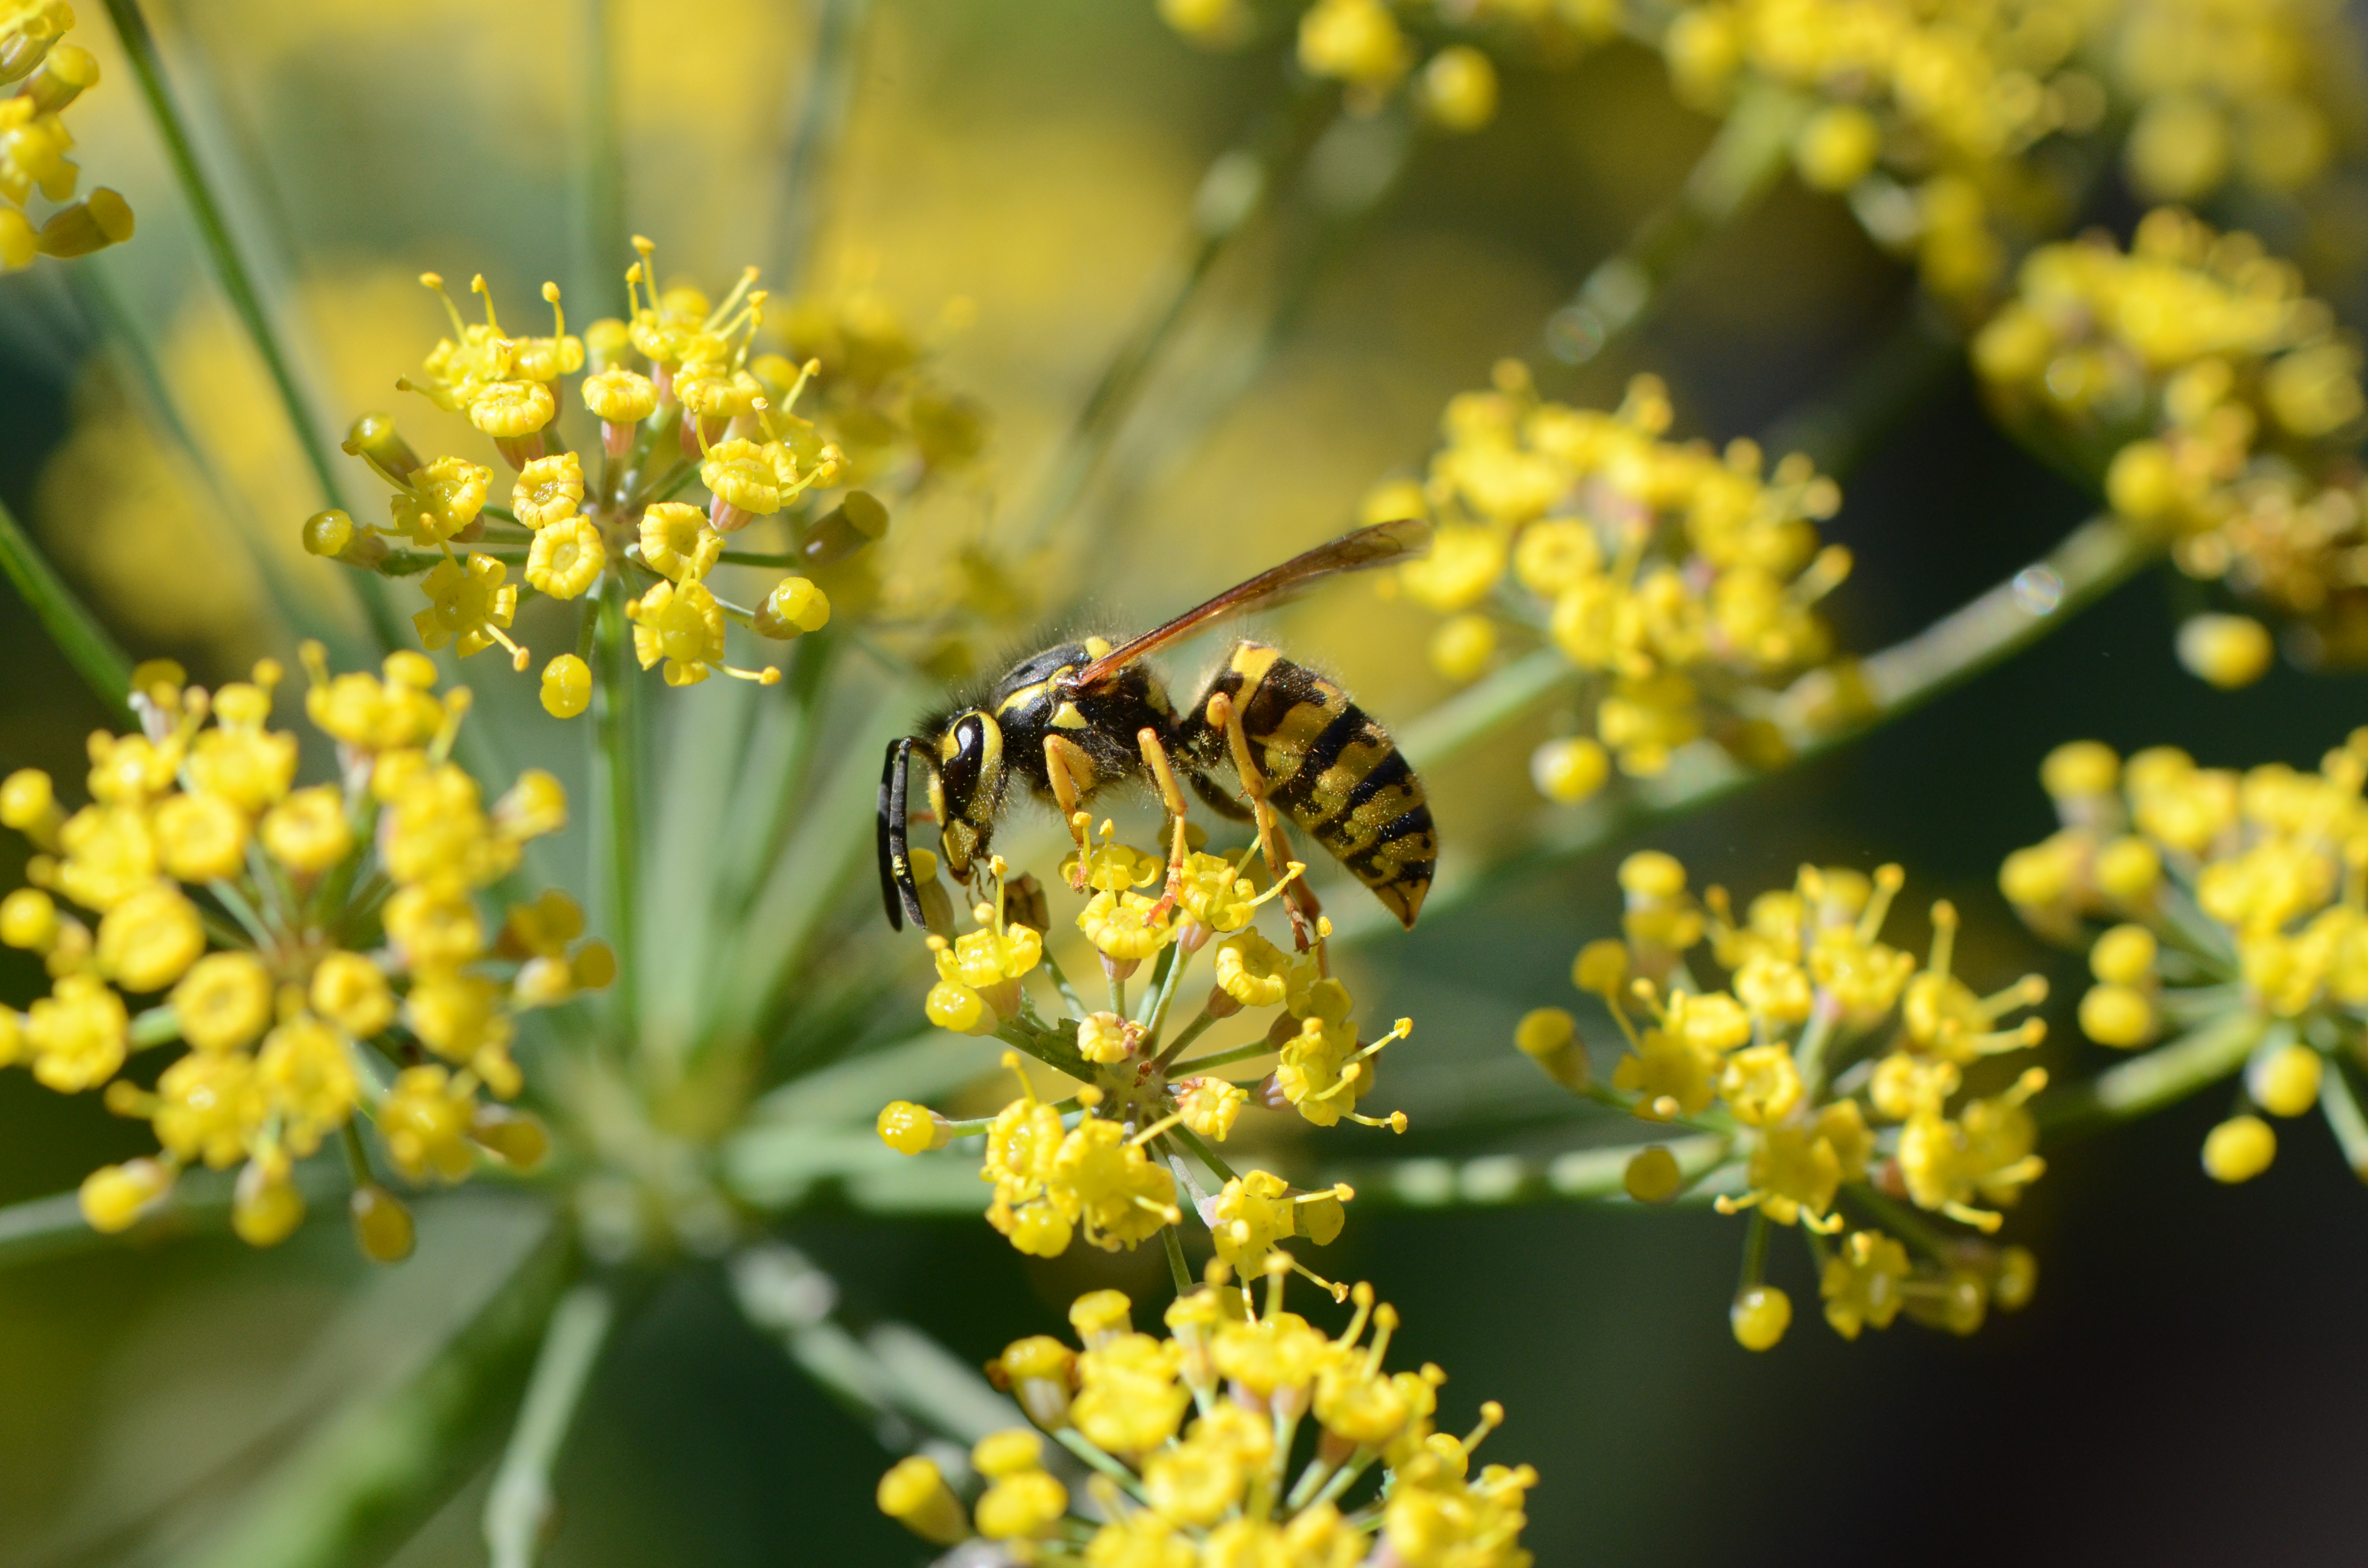 A western yellowjacket in the process of pollination.